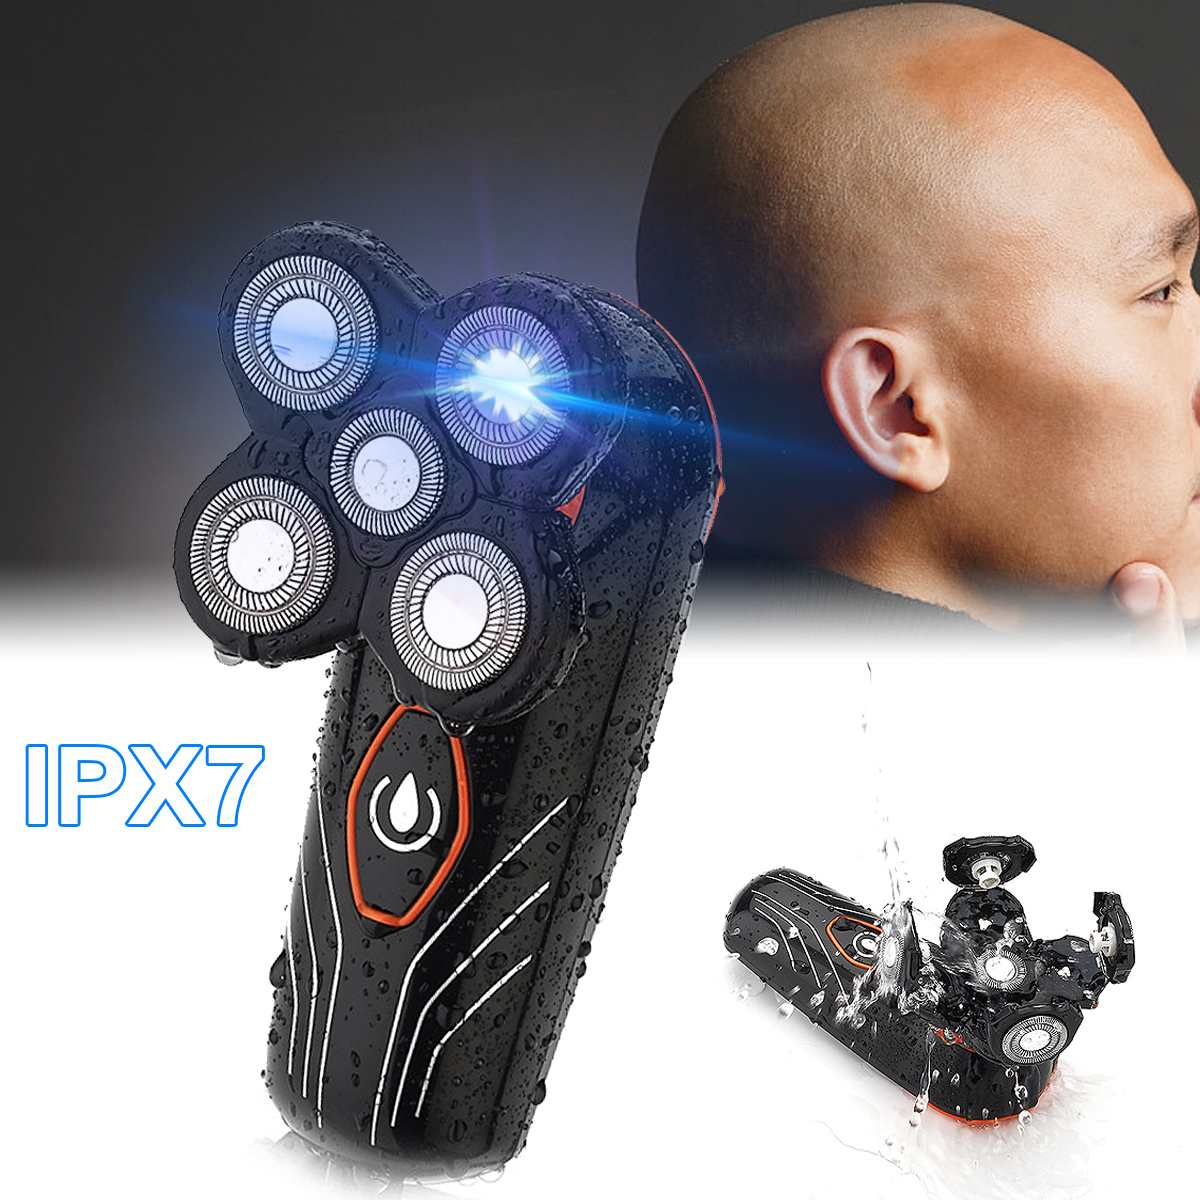 Electric Shaver 5 Heads Floating Blade Razor, [variant_title], [option1], [option2], [option3] - anythinganyware